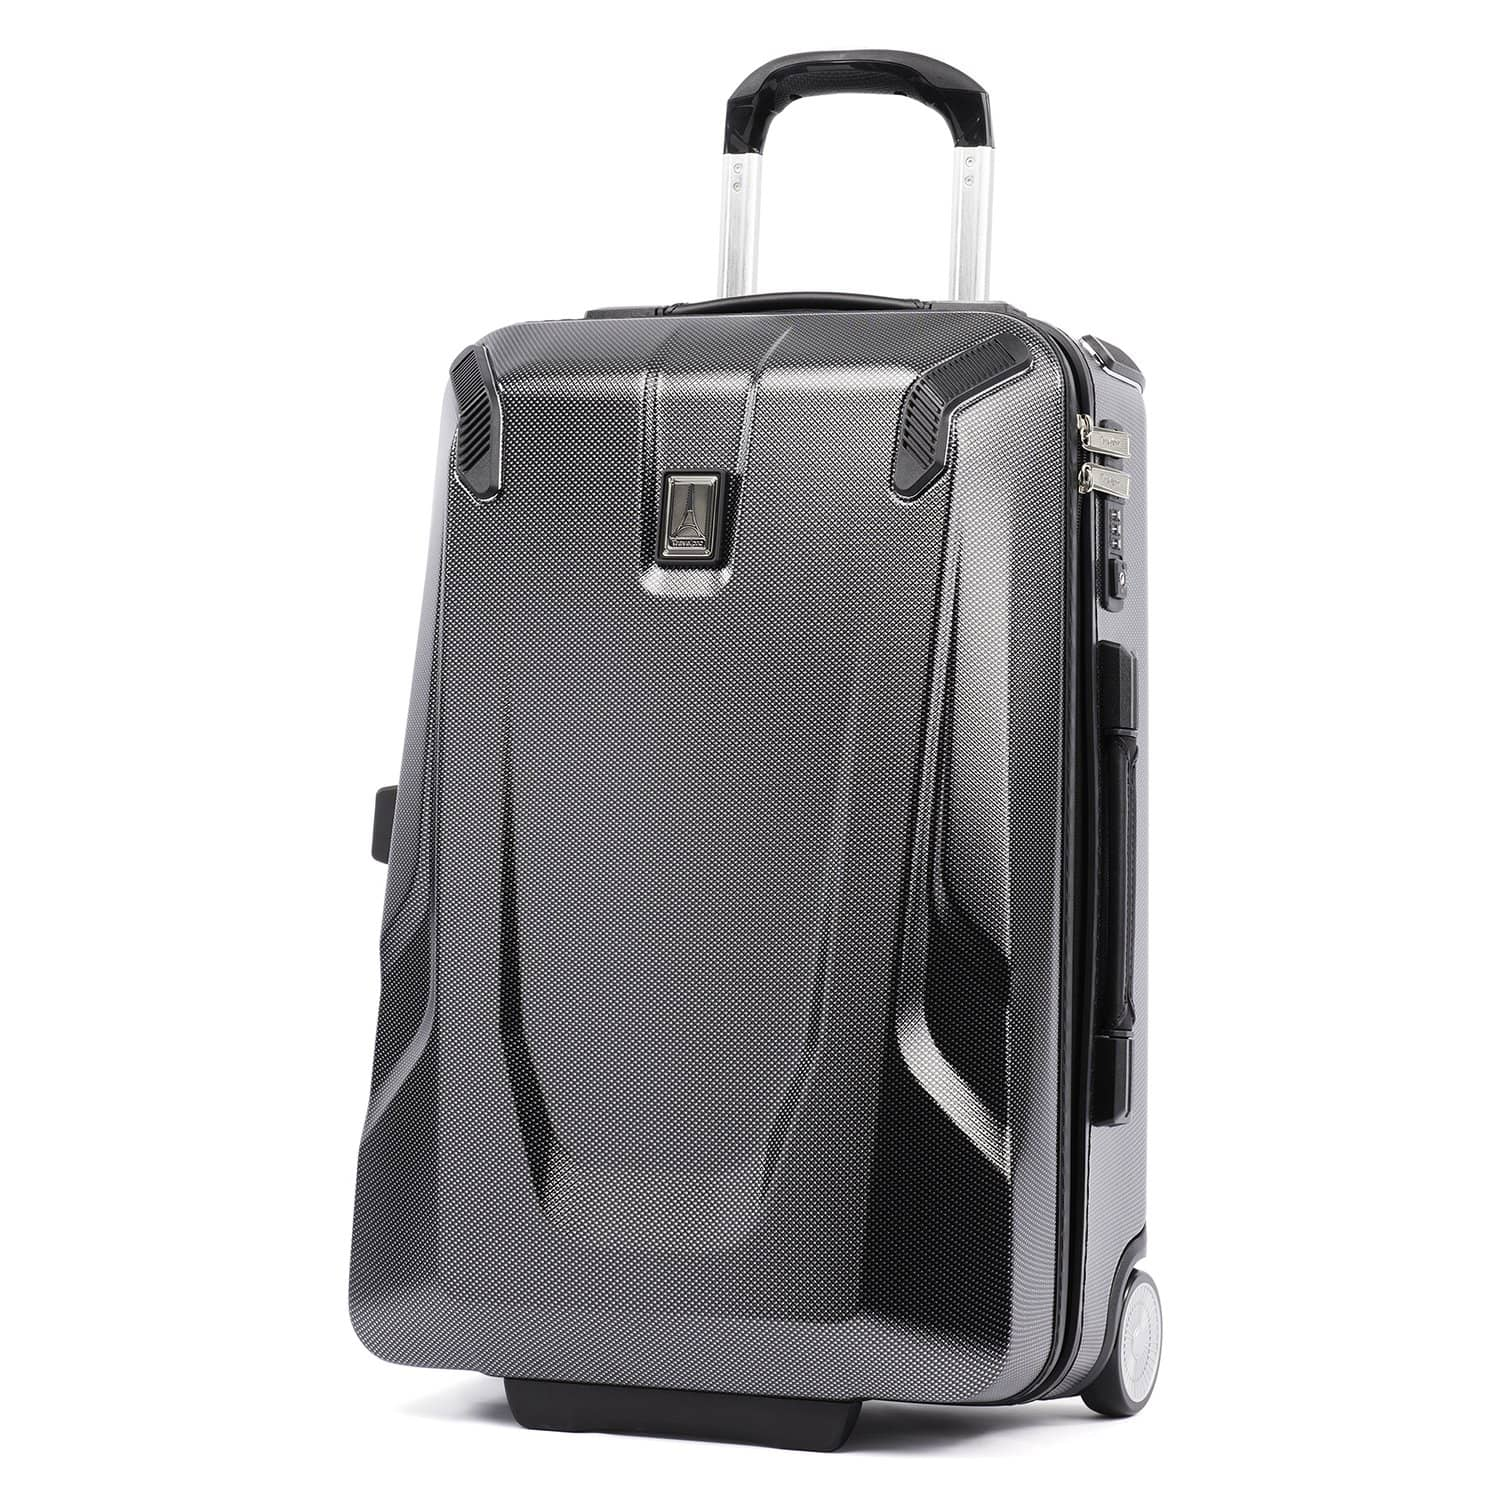 "Travelpro Crew™ 11 22"" Slim Hardside Carry-on Rollaboard® CARBON GREY"